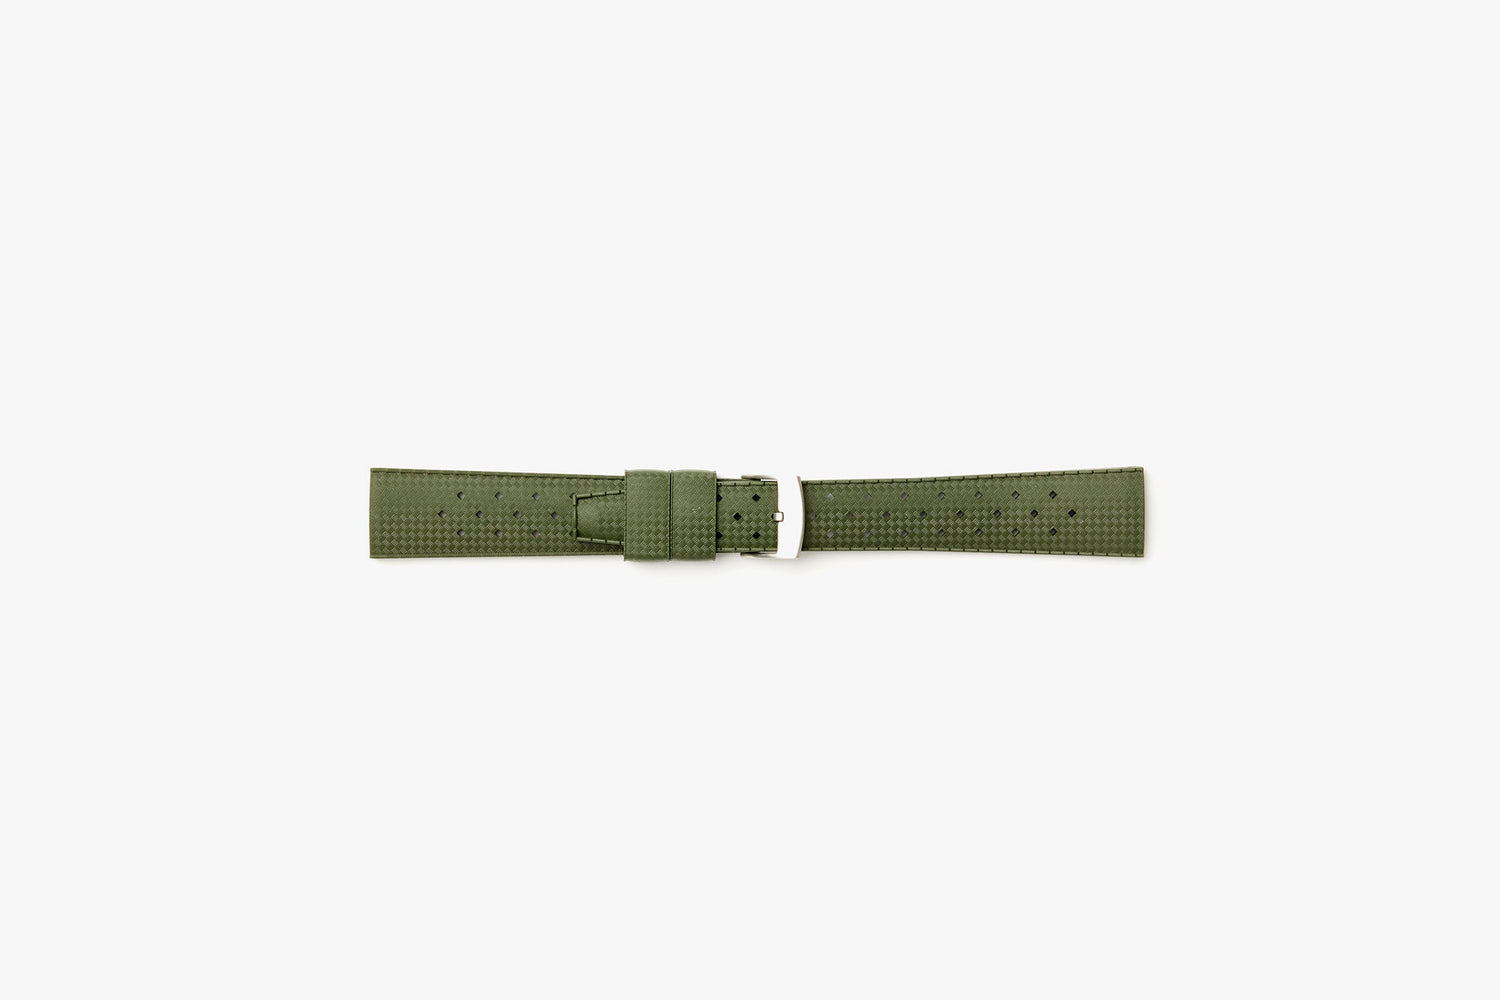 Nato Green - TROPIC Dive Watch Strap - Laying flat